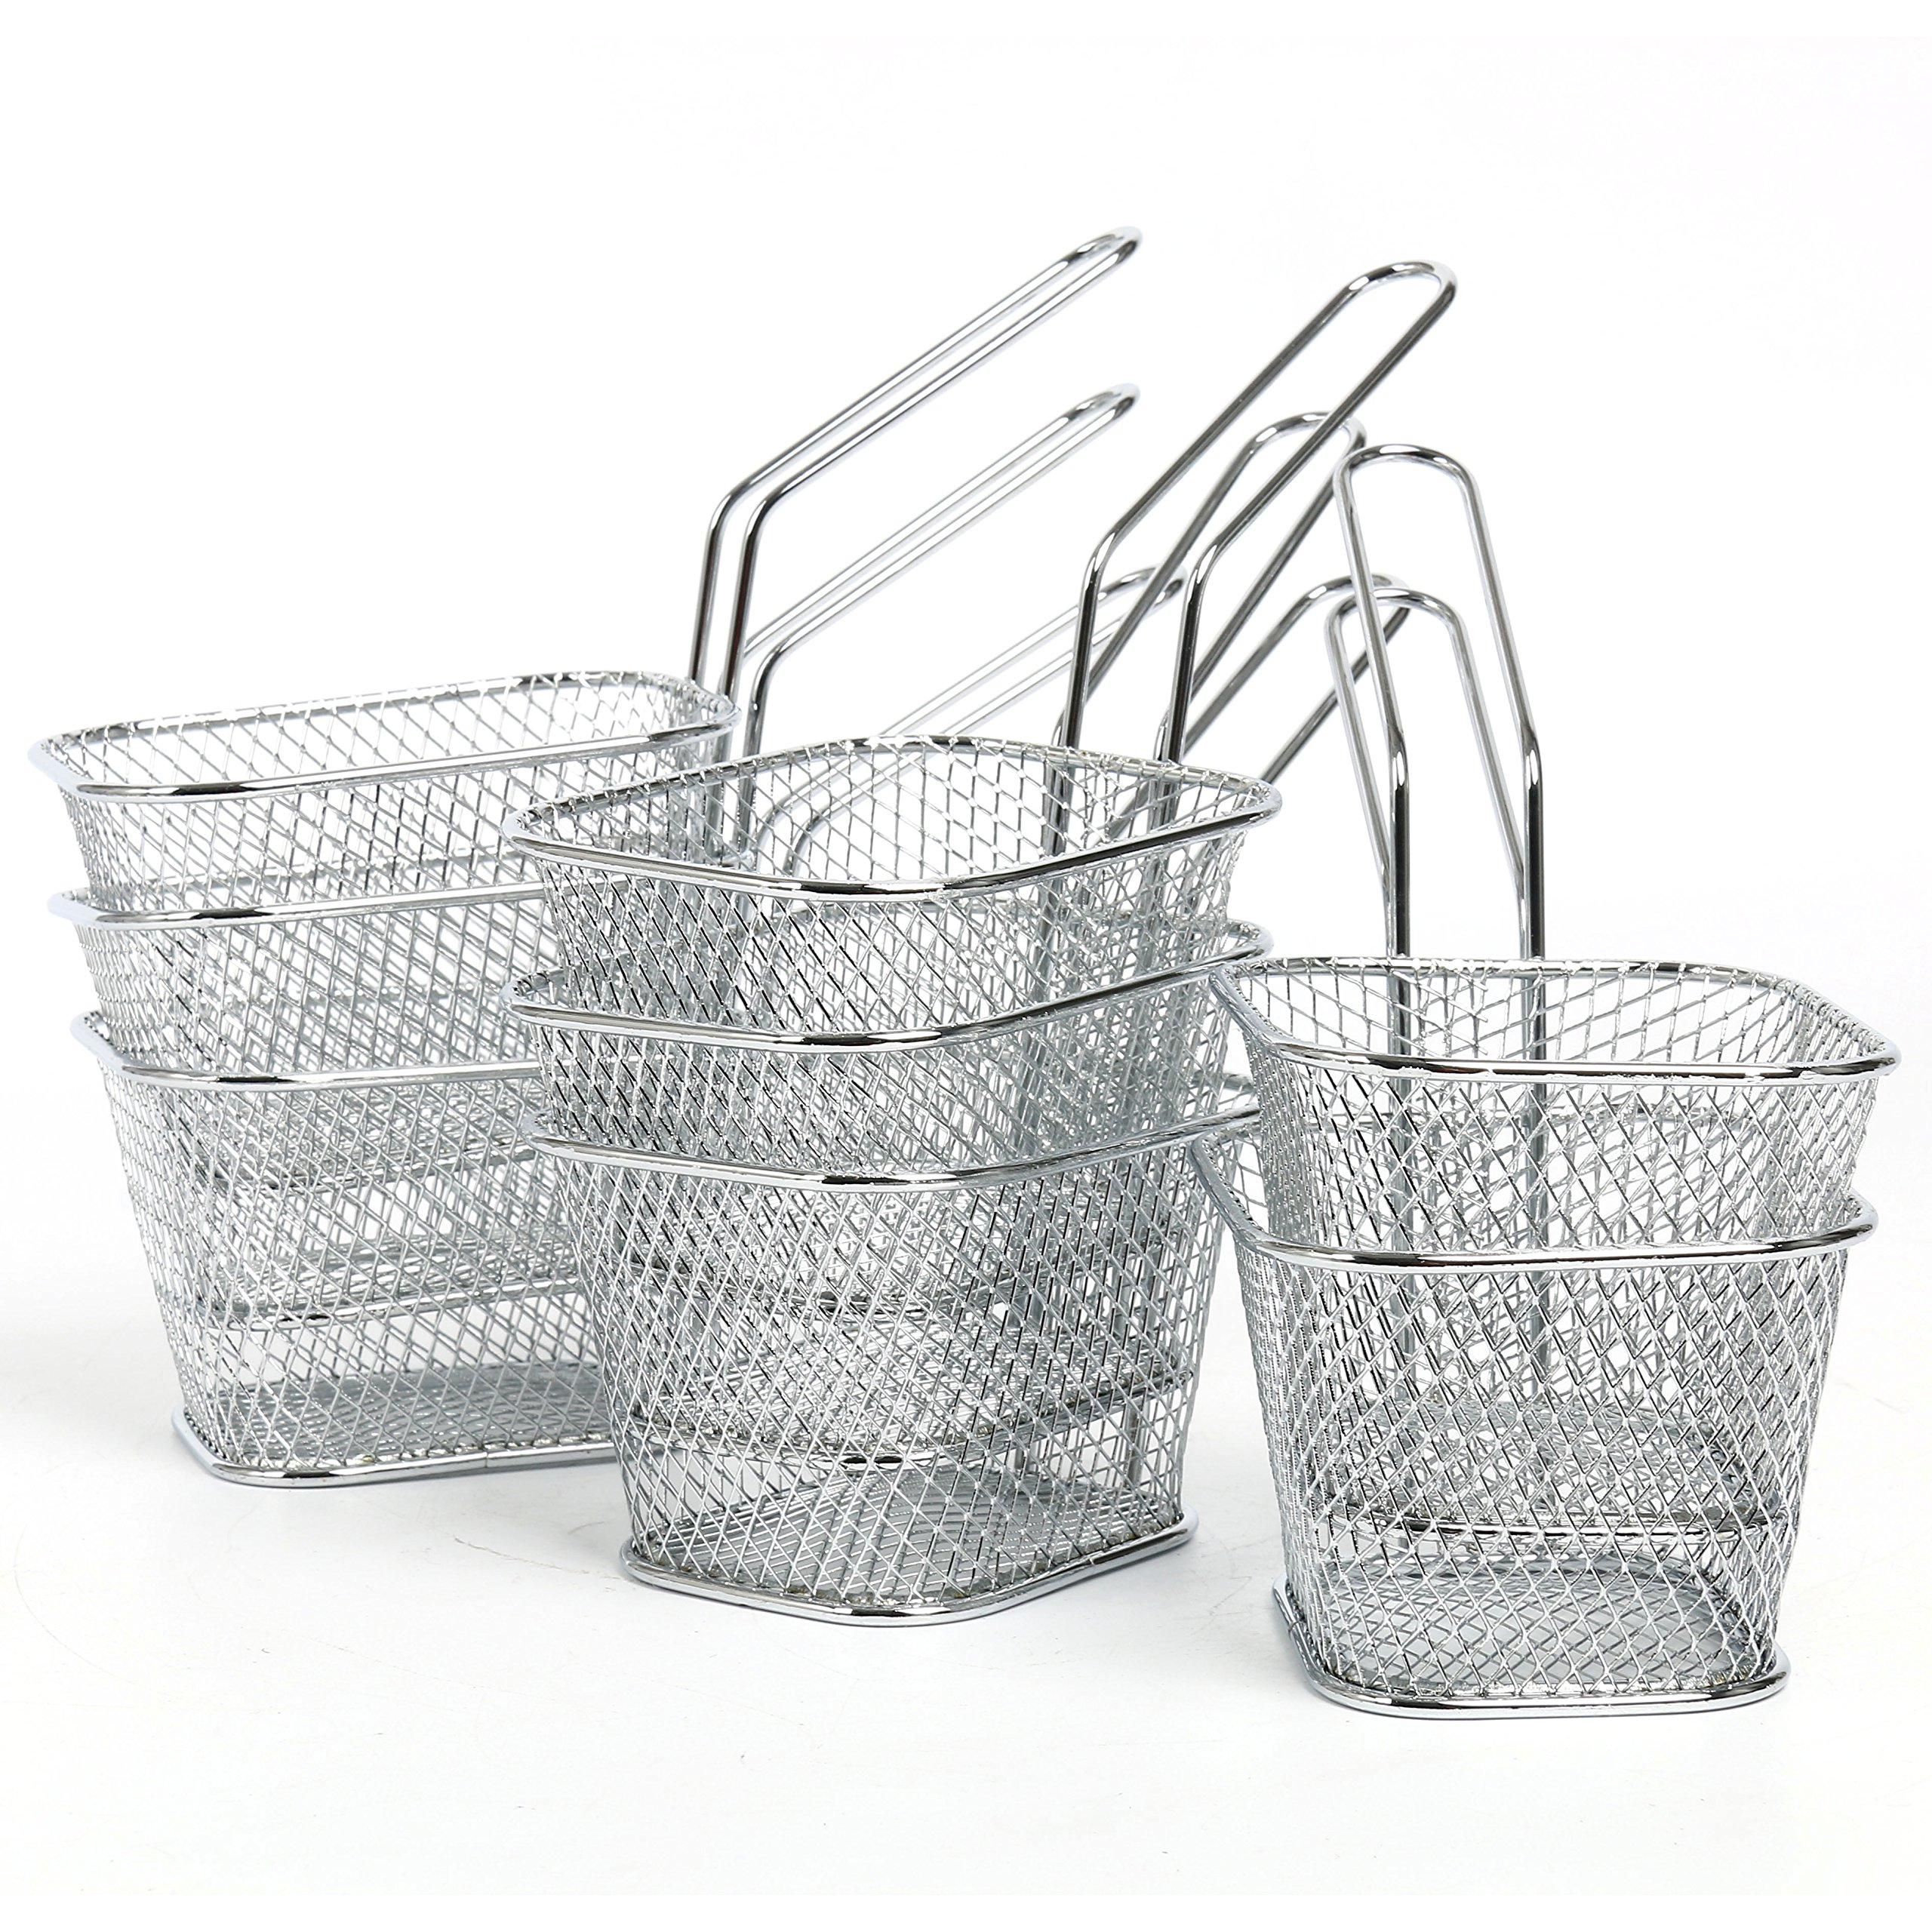 Yaekoo 8Pcs Mini Mesh Wire French Fry Chips Baskets Net Strainer Kitchen Cooking Tools by Yaekoo (Image #3)